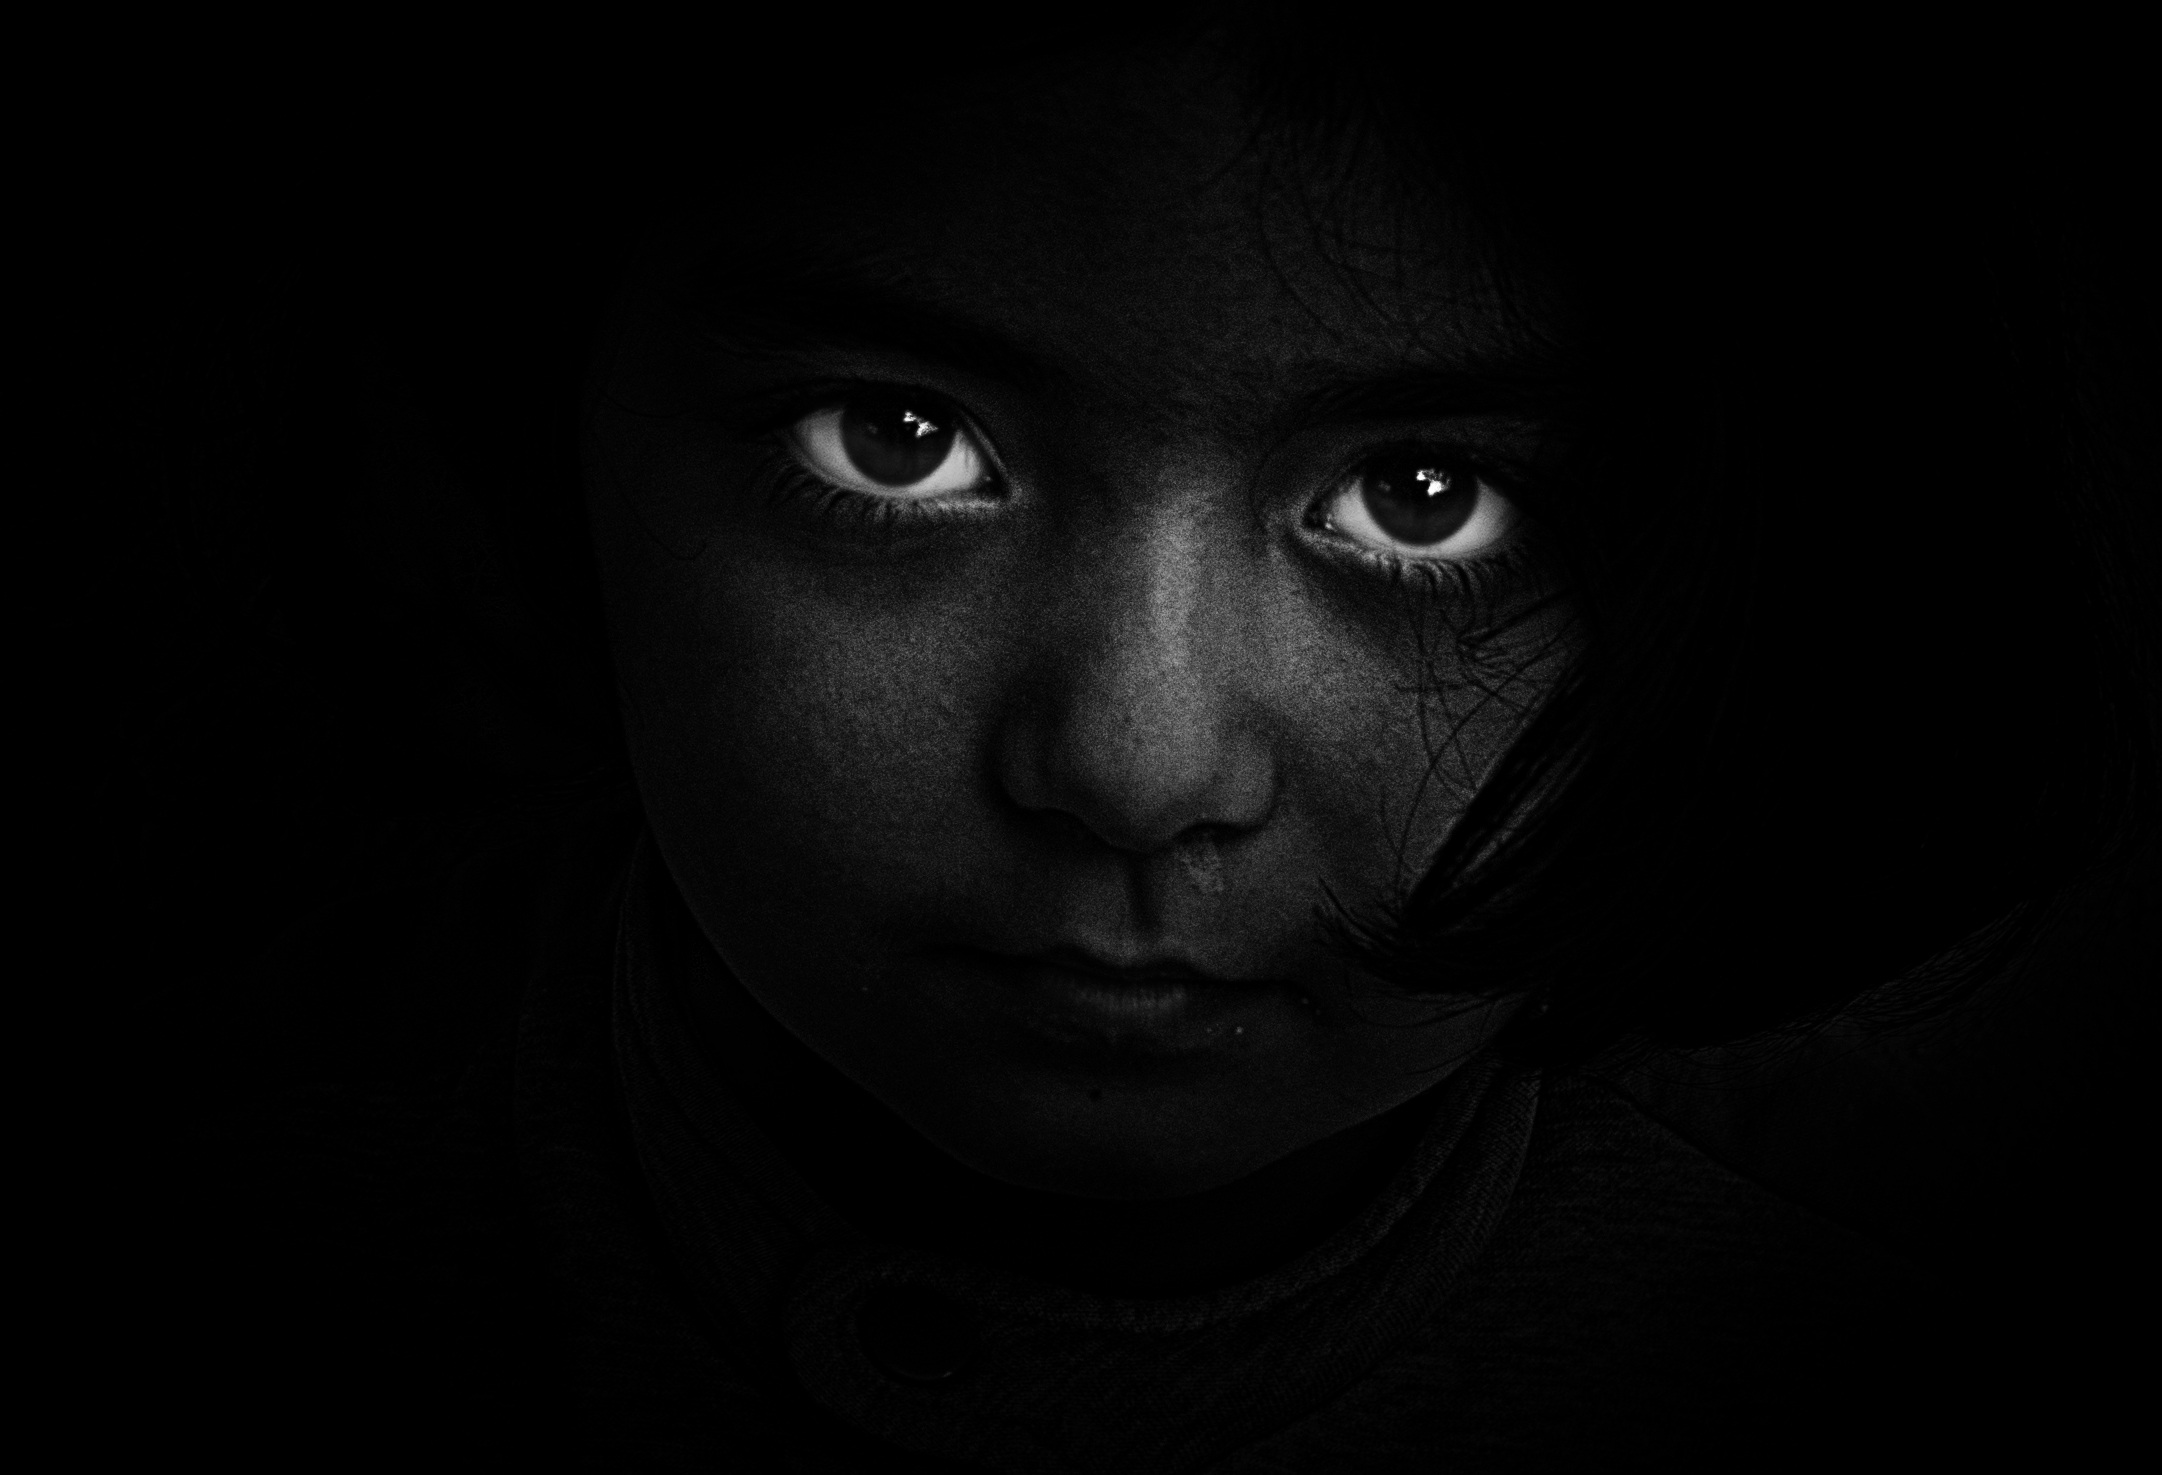 Free Stock Photo Of Black And White Dark Eyes